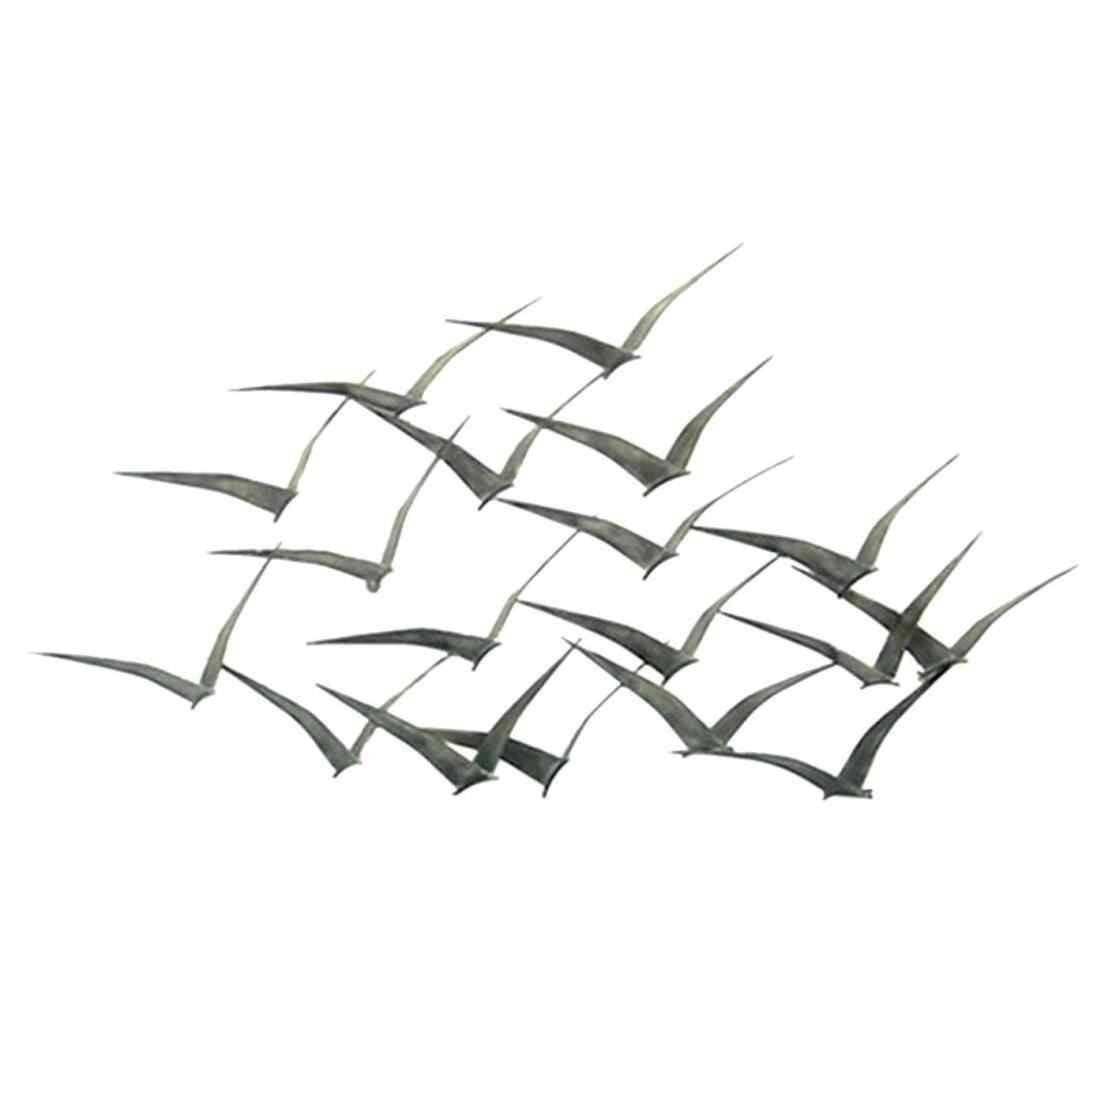 Decoration Of Bird Decal Entrancing Metal Wall Art Flock Of With Regard To Recent Flock Of Seagulls Metal Wall Art (View 1 of 20)